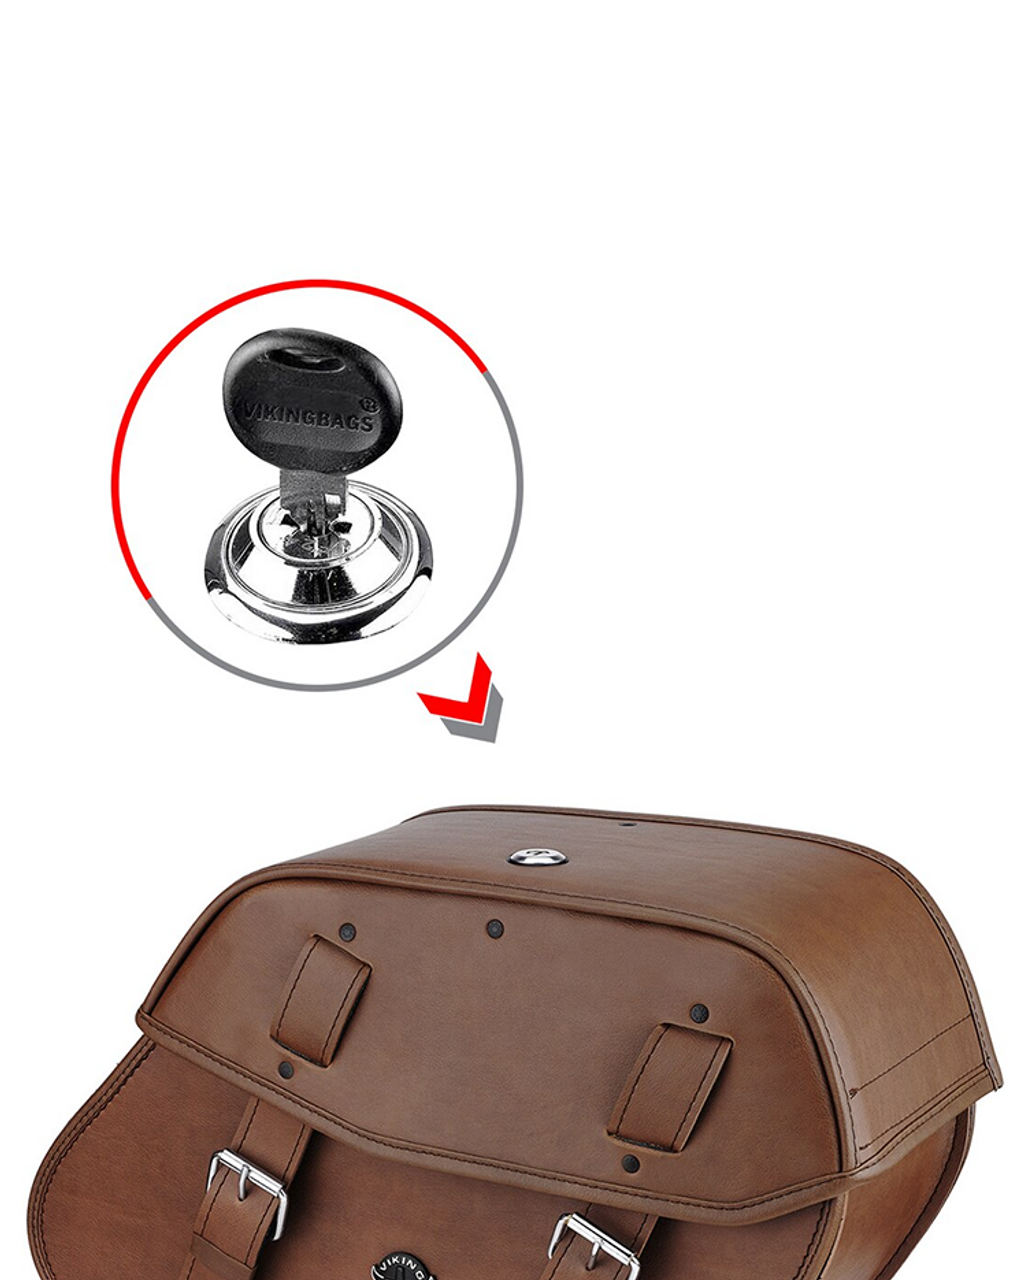 Viking Odin Brown Large Motorcycle Saddlebags For Harley Softail Fatboy FLSTF Lock Key View